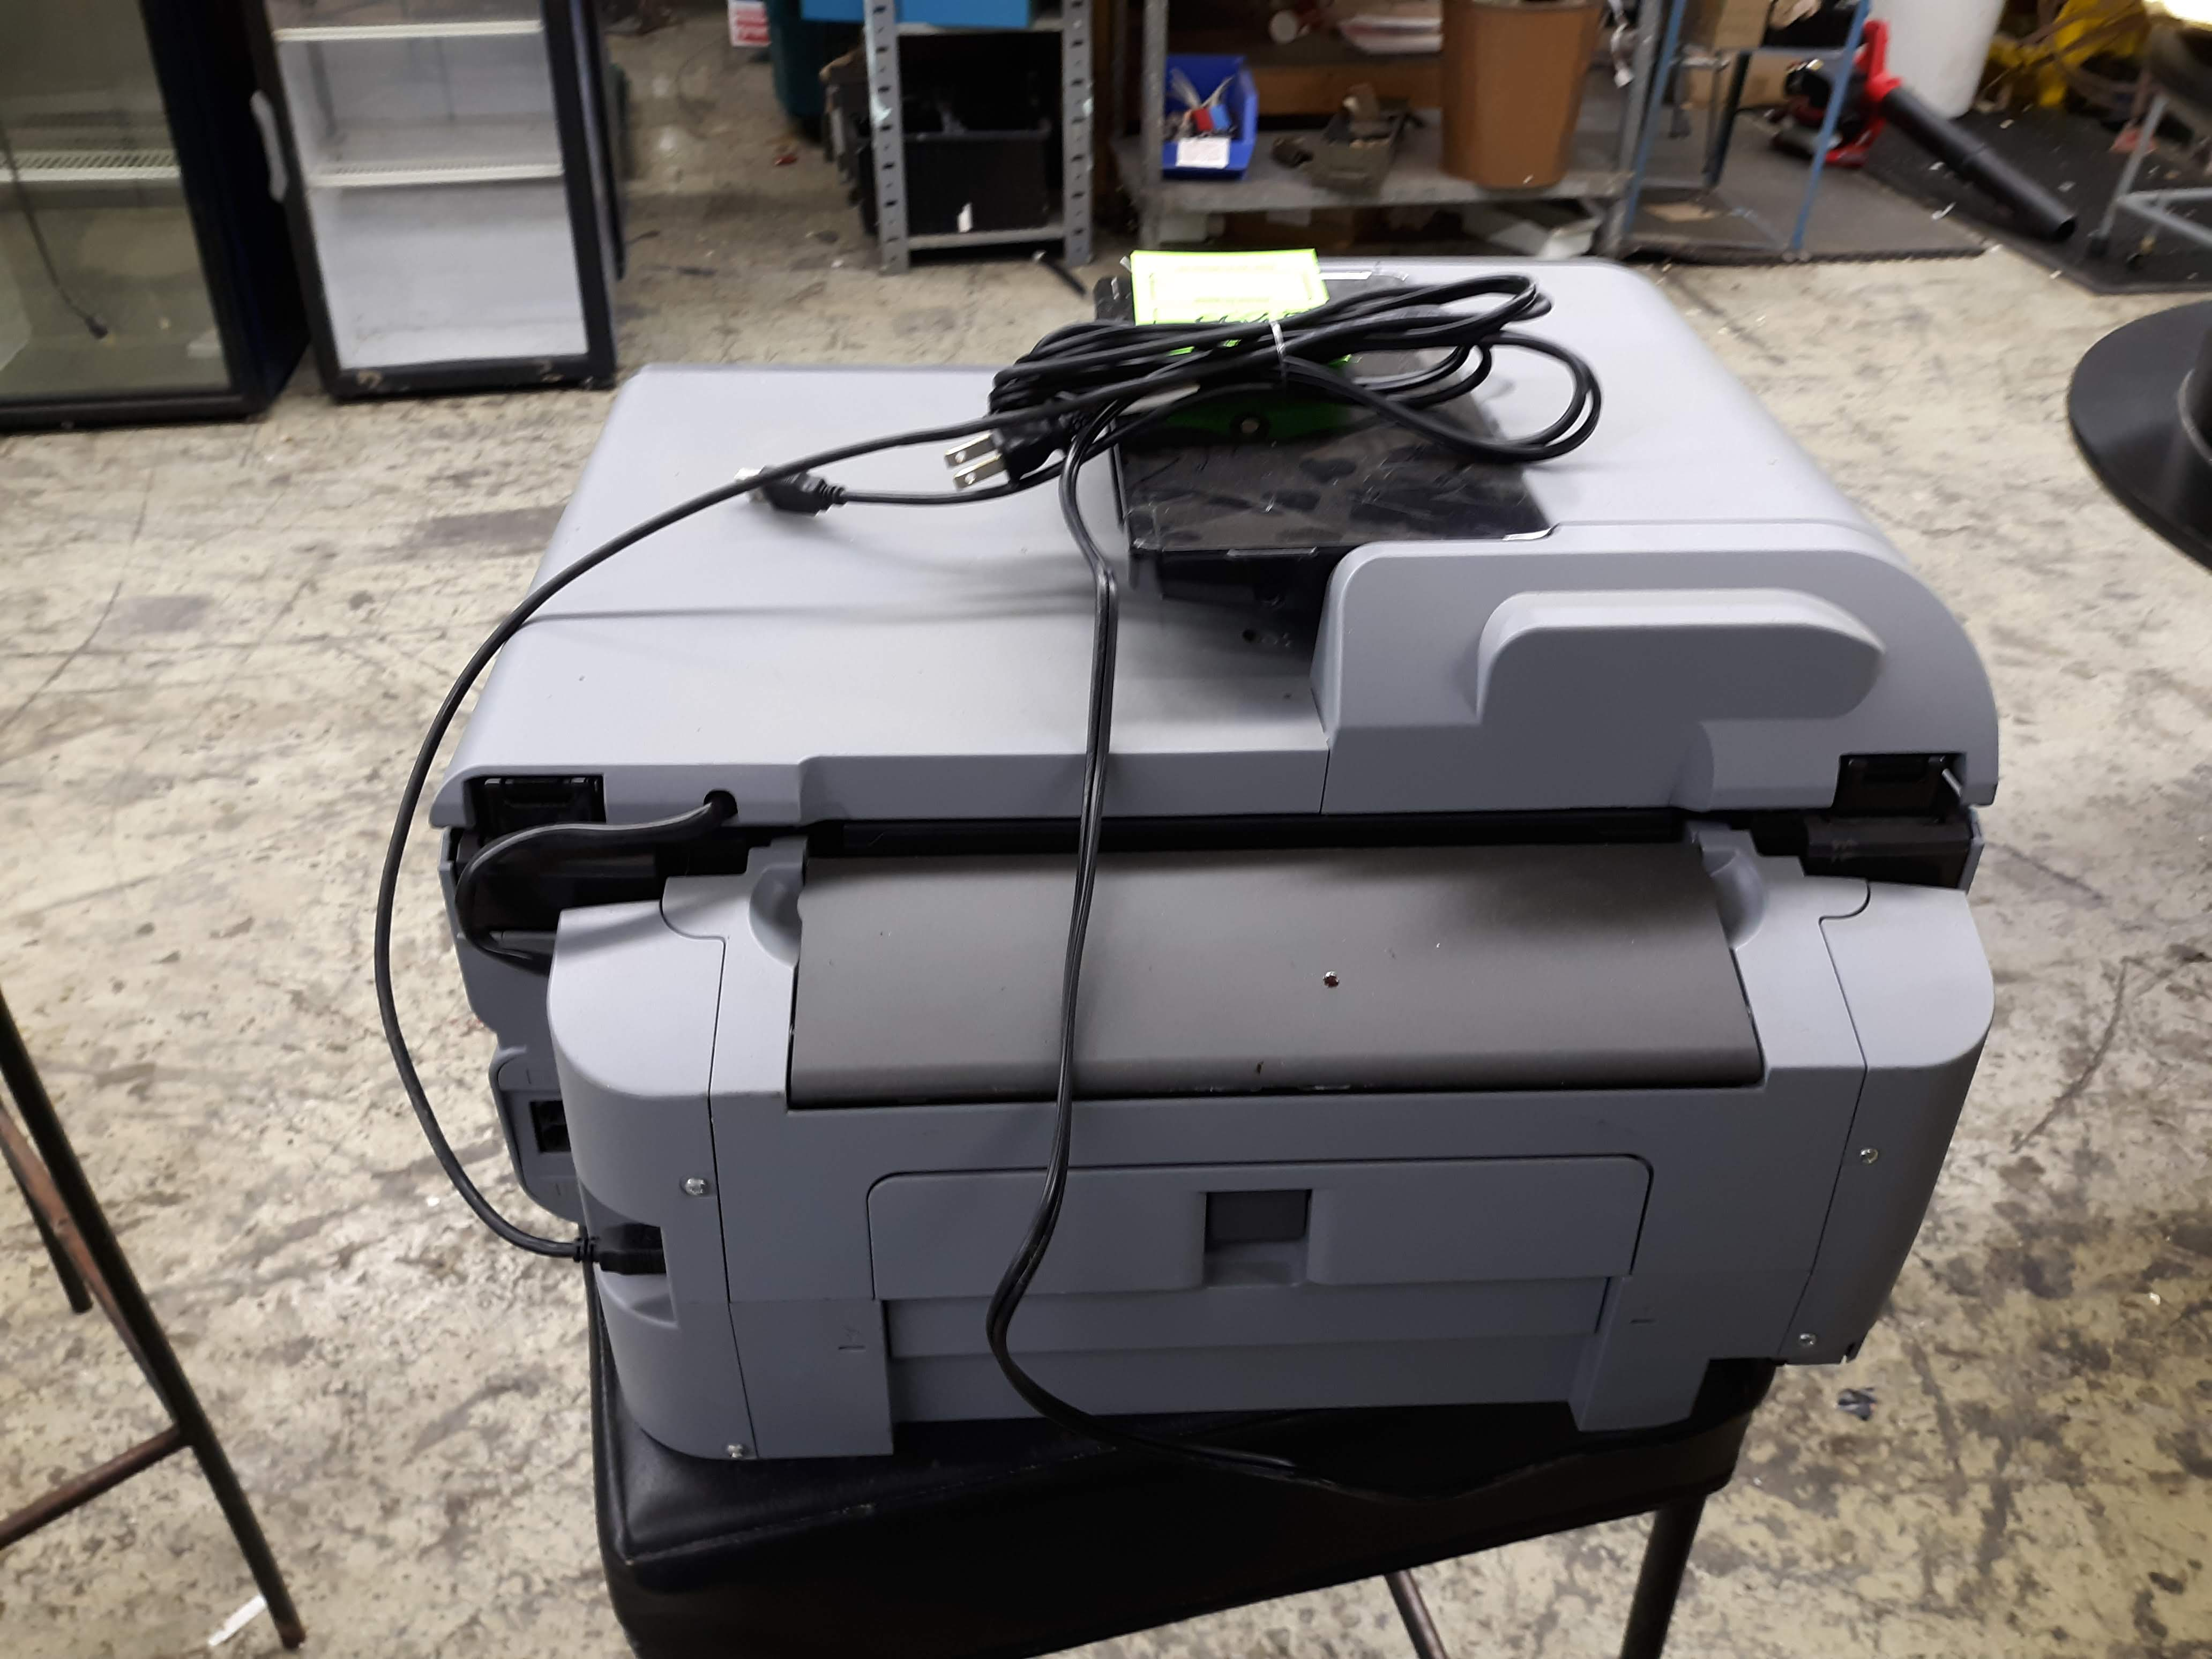 CANON MP530 ALL-IN-ONE PRINTER/FAX MACHINE (LOCATED AT: 433 COUNCIL DRIVE, FORT WAYNE, IN 46825) - Image 2 of 2